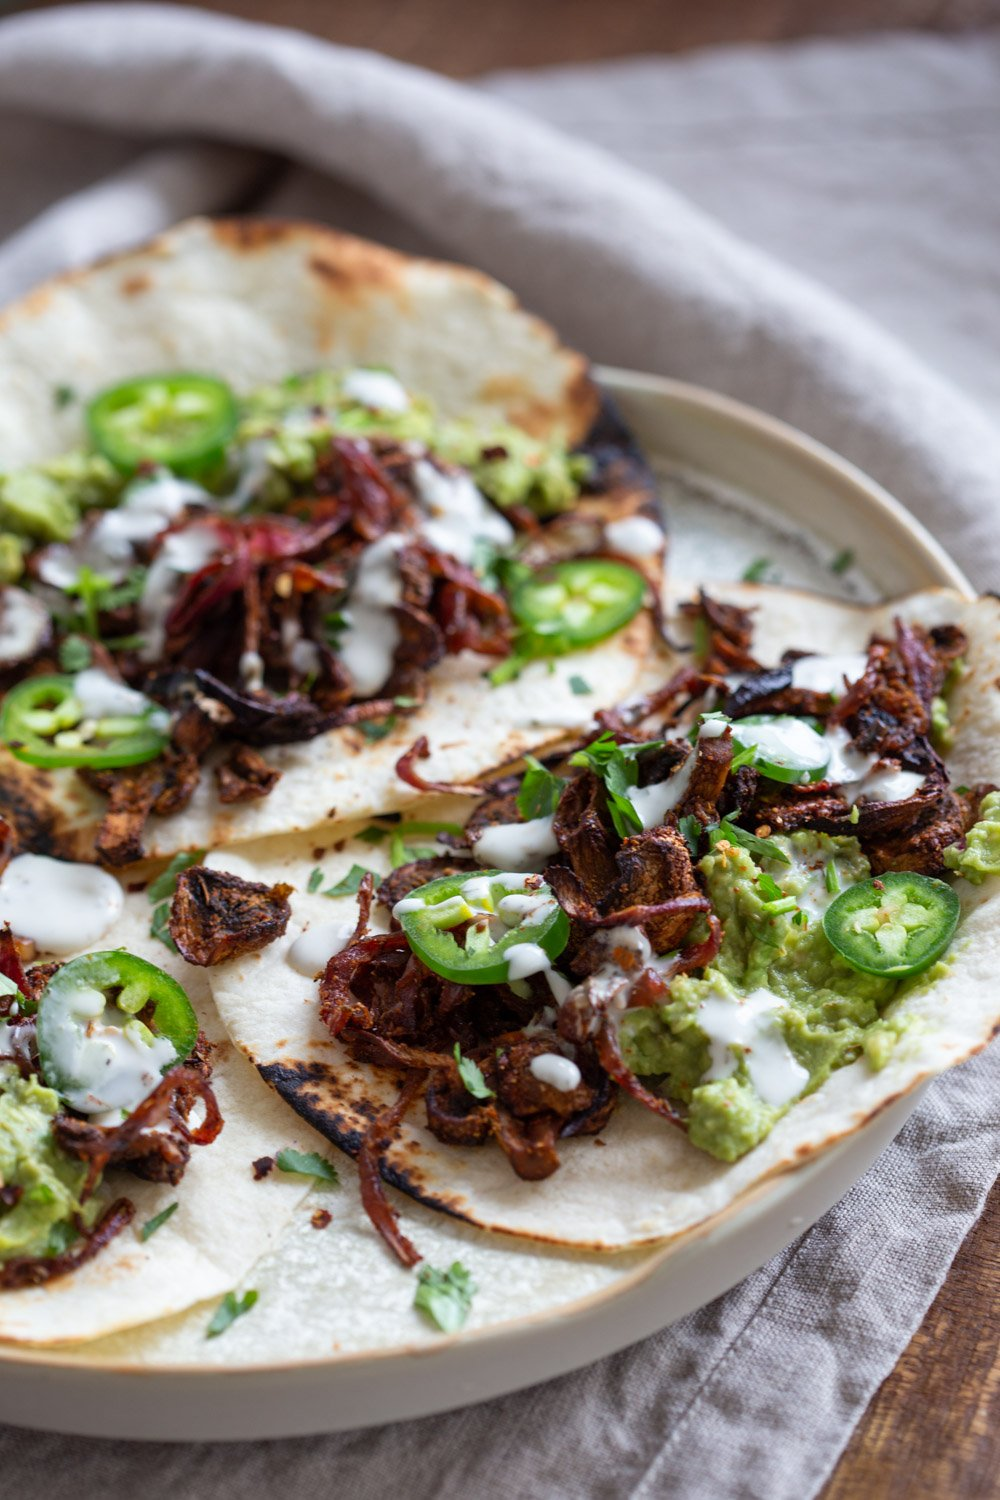 Vegan Carnitas. Mushrooms marinated in Spicy Smoky Zesty Marinade, Baked and served with toppings in tacos, wraps, burritos. Use jackfruit for variation. #vegan #Glutenfree #Nutfree #Recipe. Soyfree option #VeganRicha #mushroomcarnitas #veganarnitas